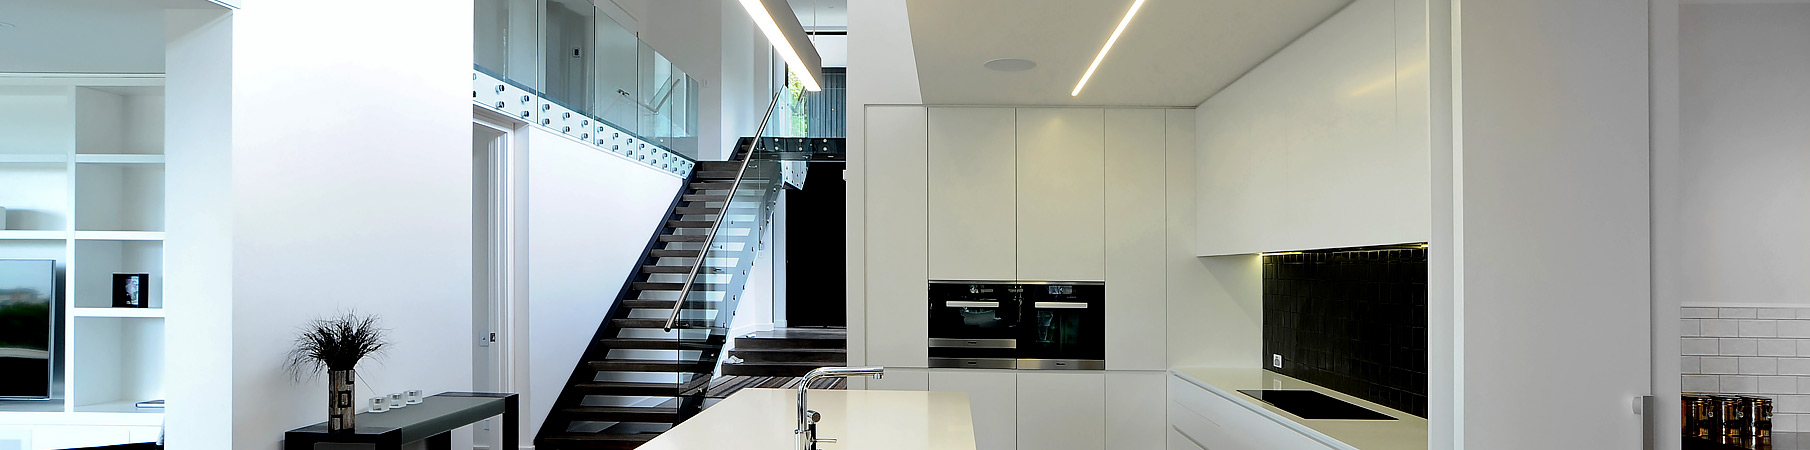 Black and white kitchen project